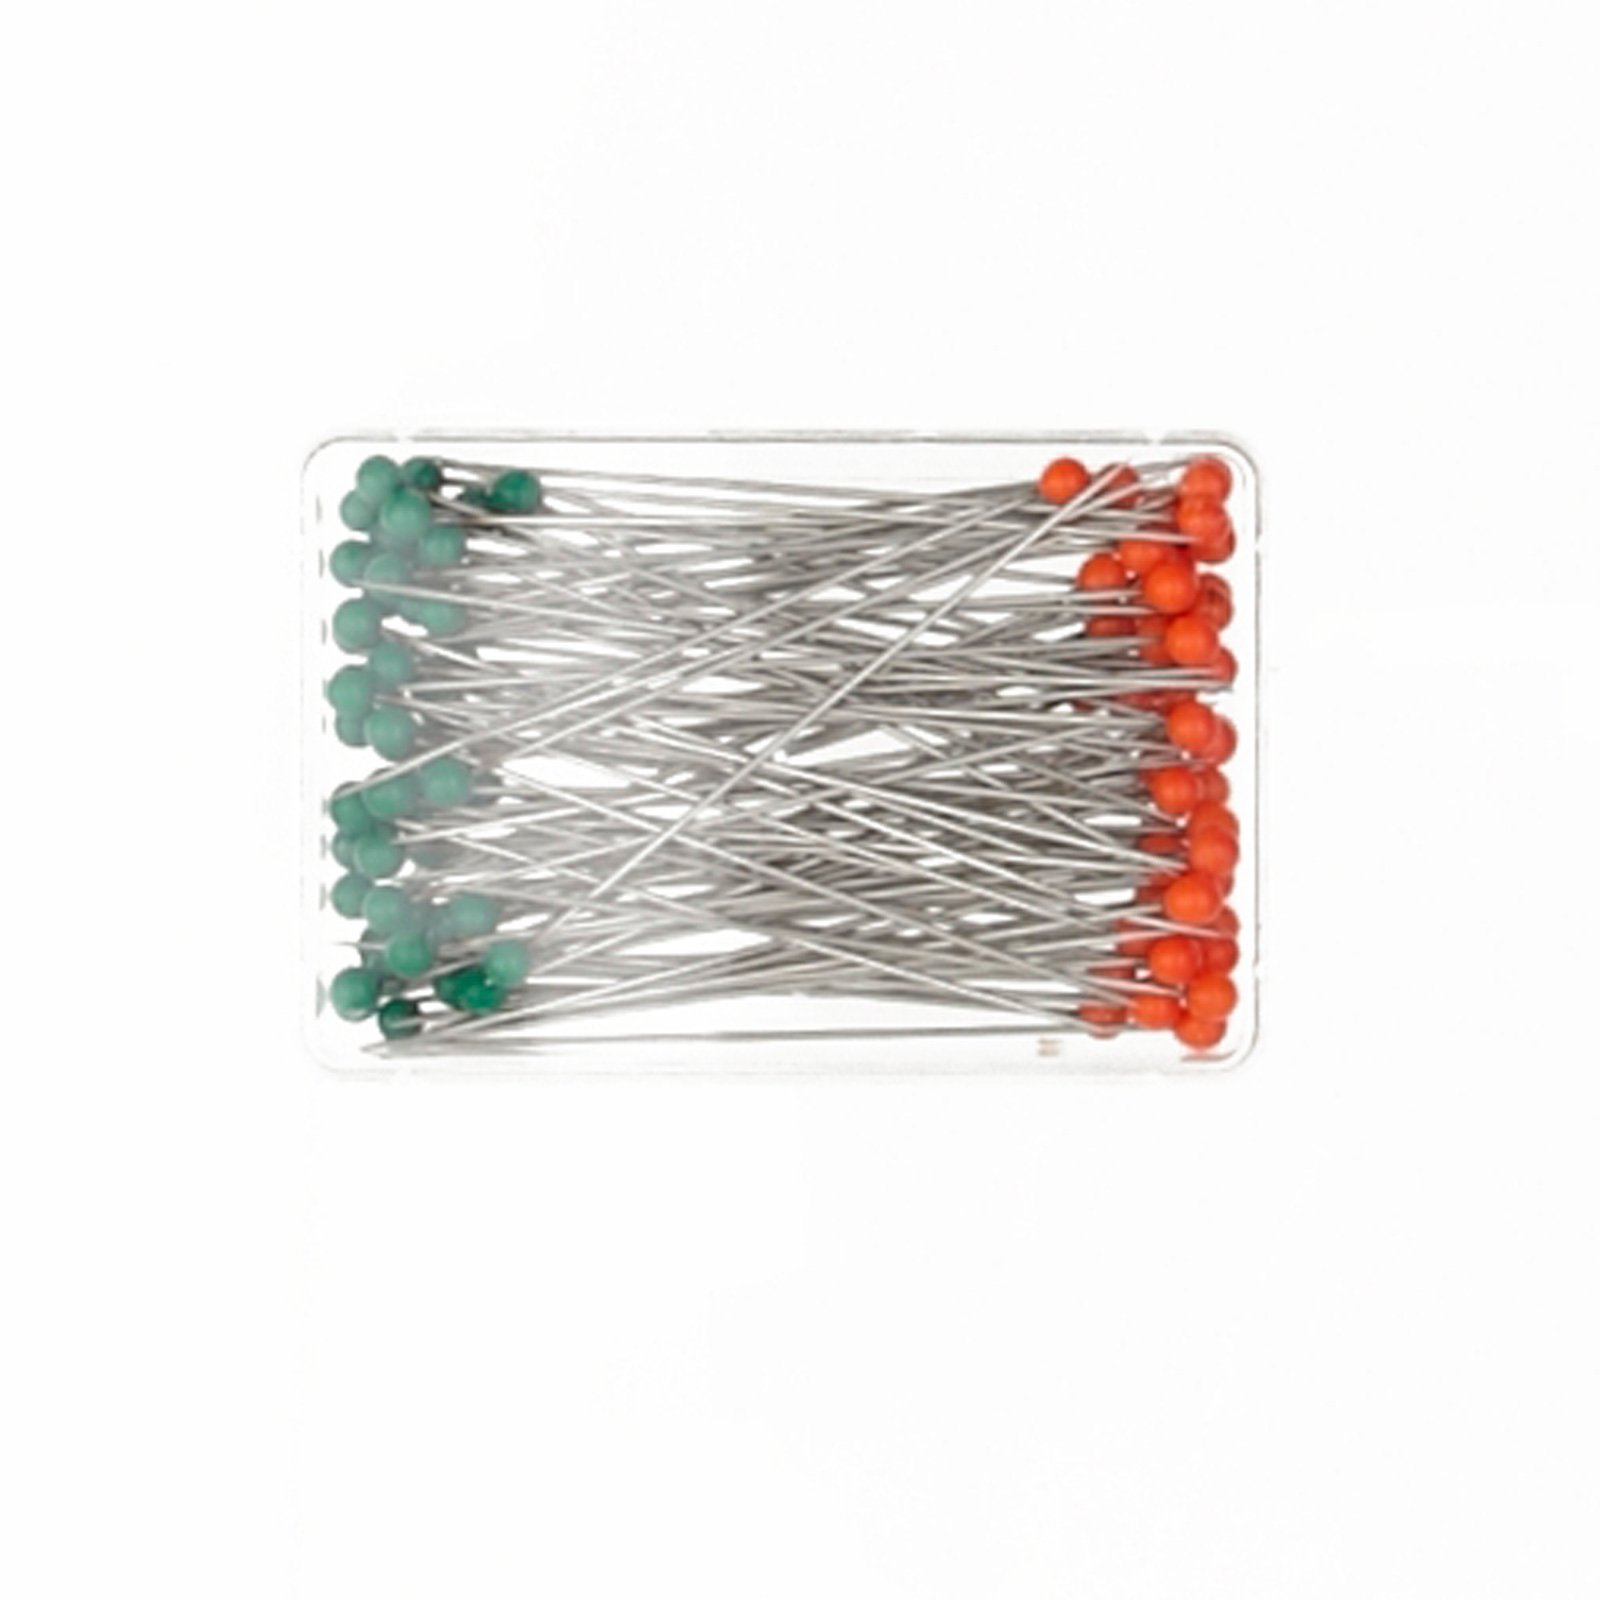 Clover 0366604 Box of Quilting 48mm Pins-100/box by CLOVER